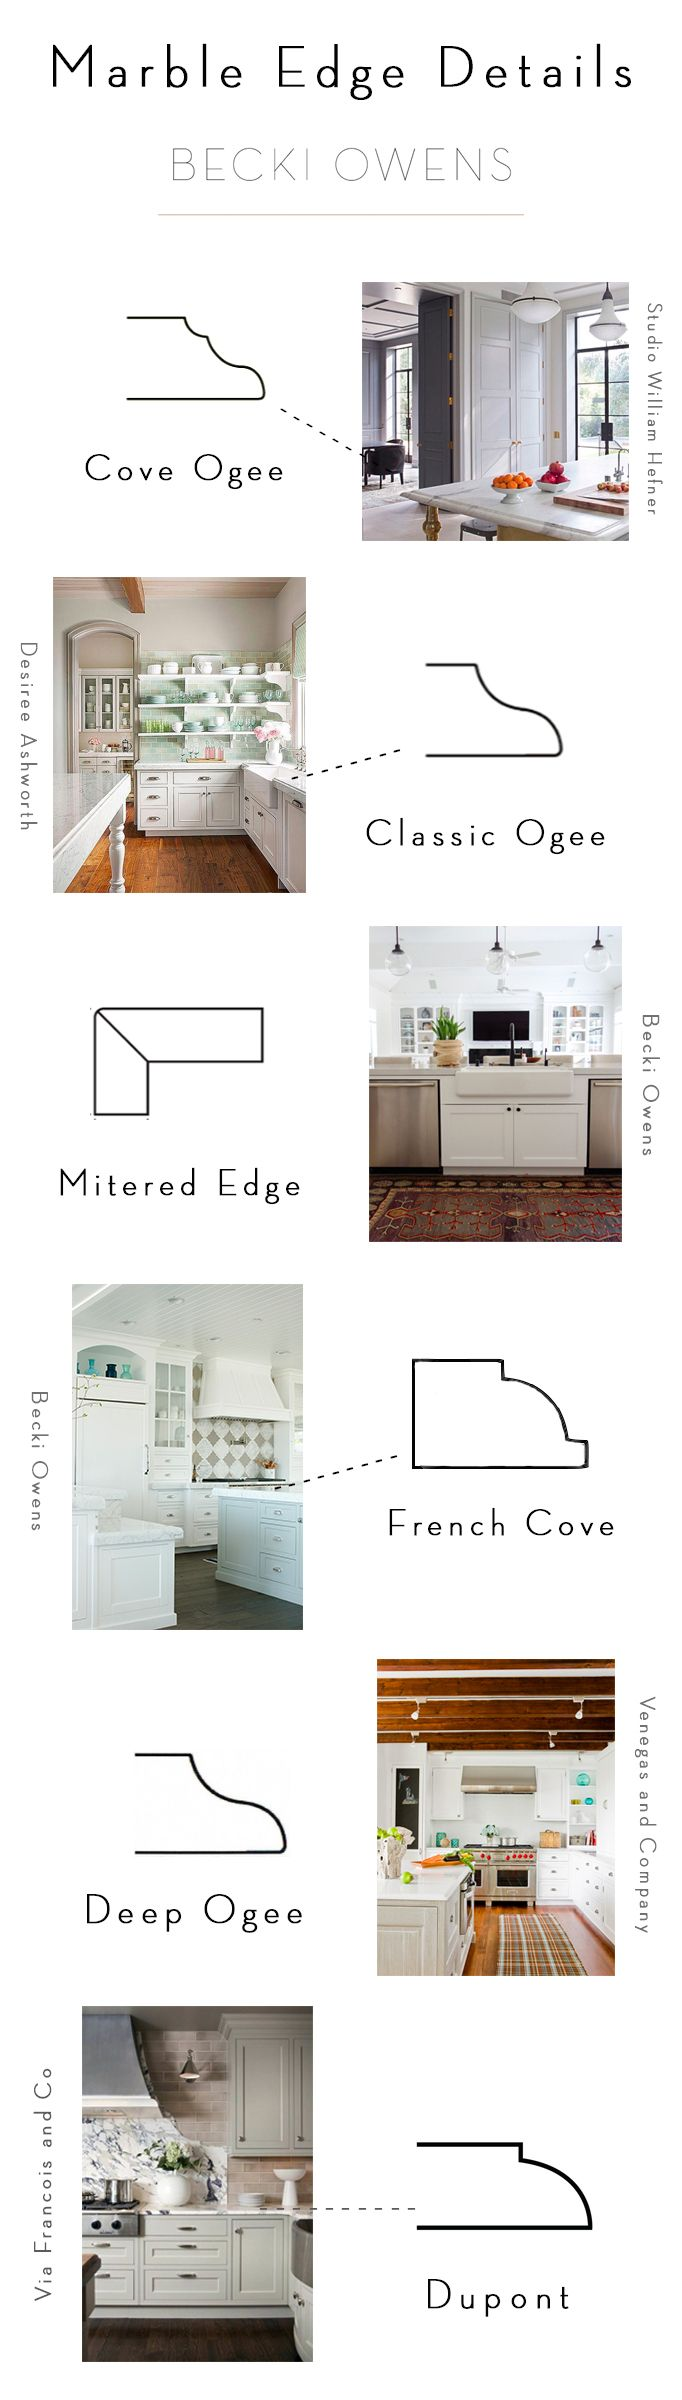 6 Choices For Marble Countertop Edge Detailsbecki Owens Marble